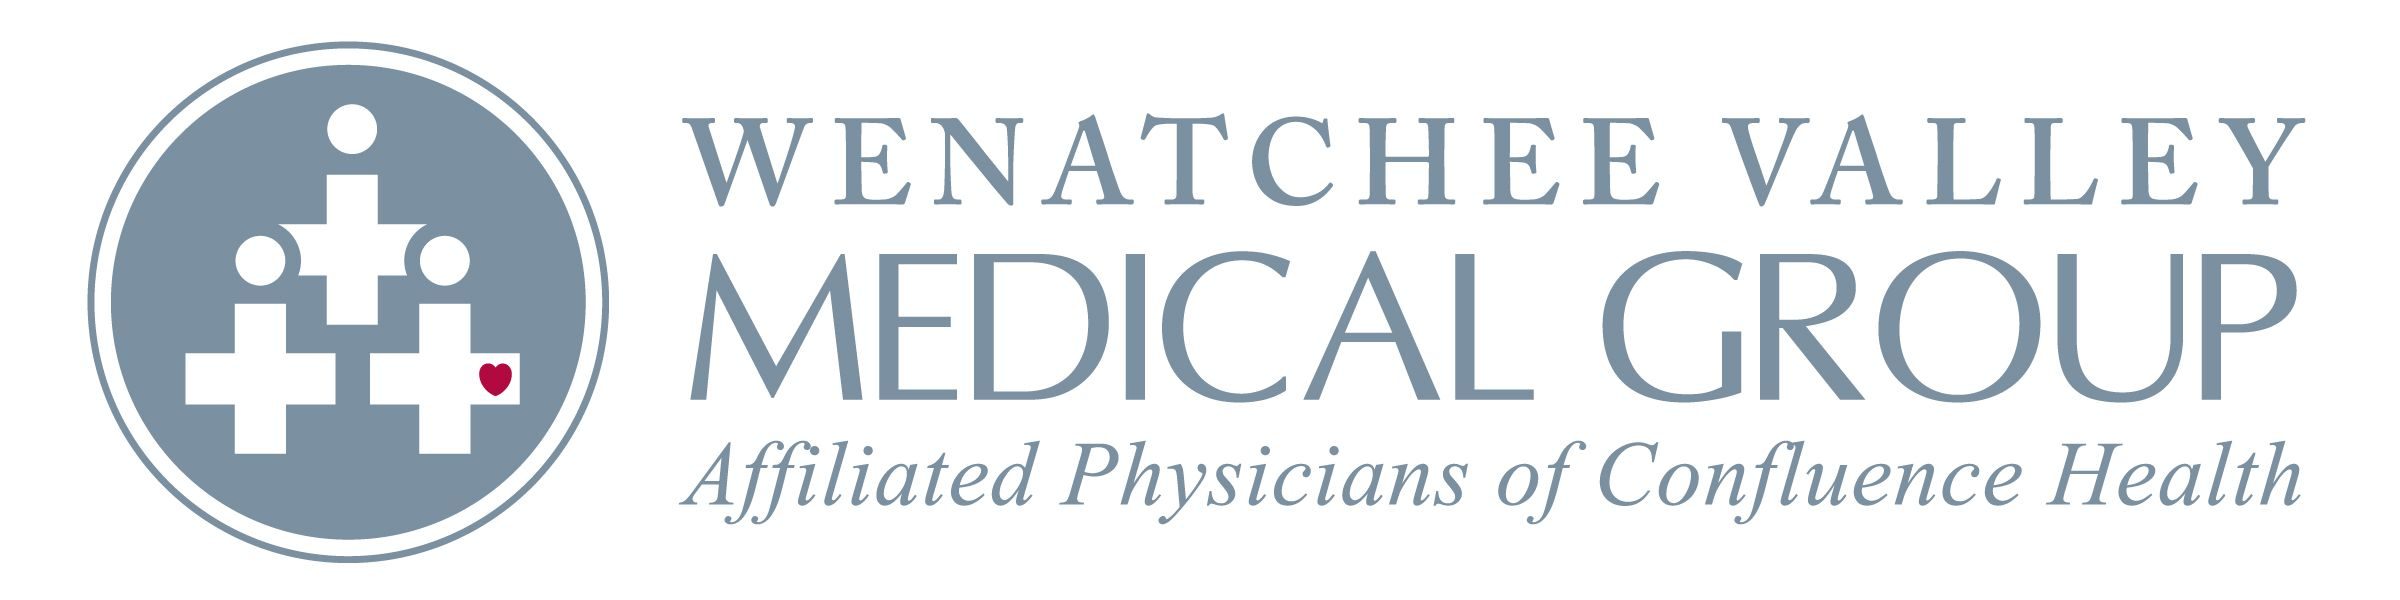 Wenatchee Valley Medical Group